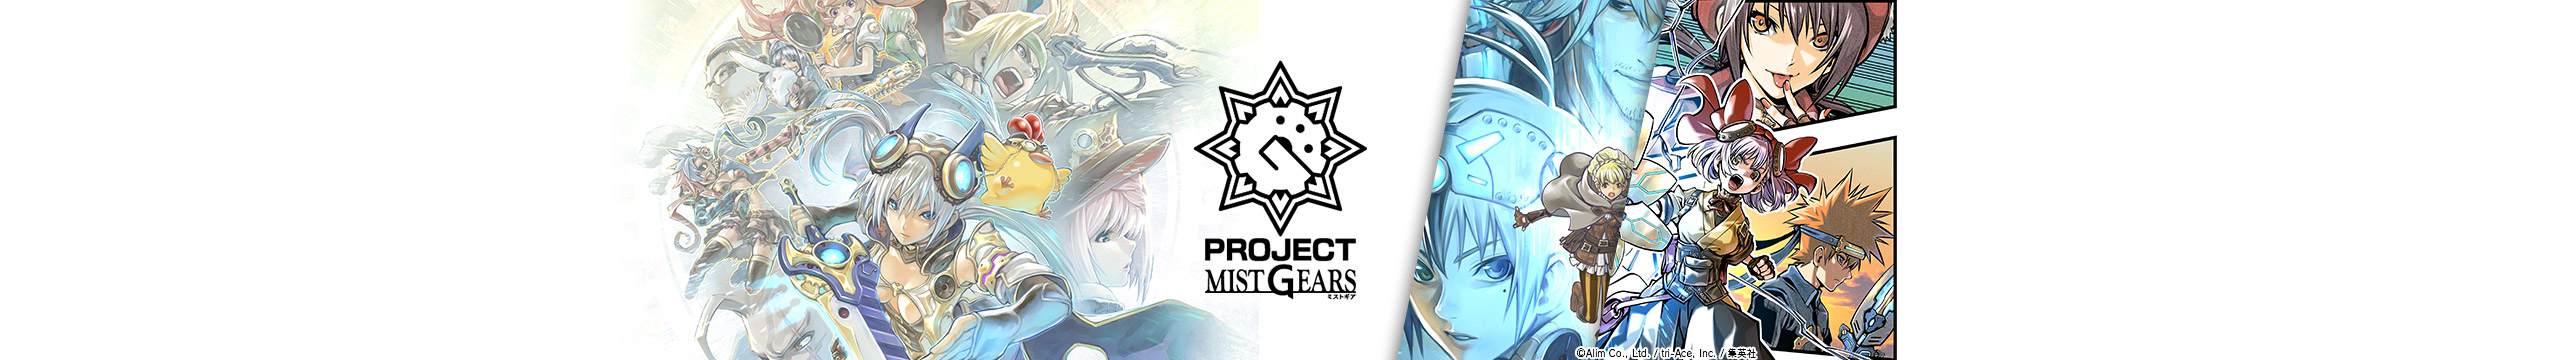 PROJECT MIST GEARS(プロジェクト ミストギア)